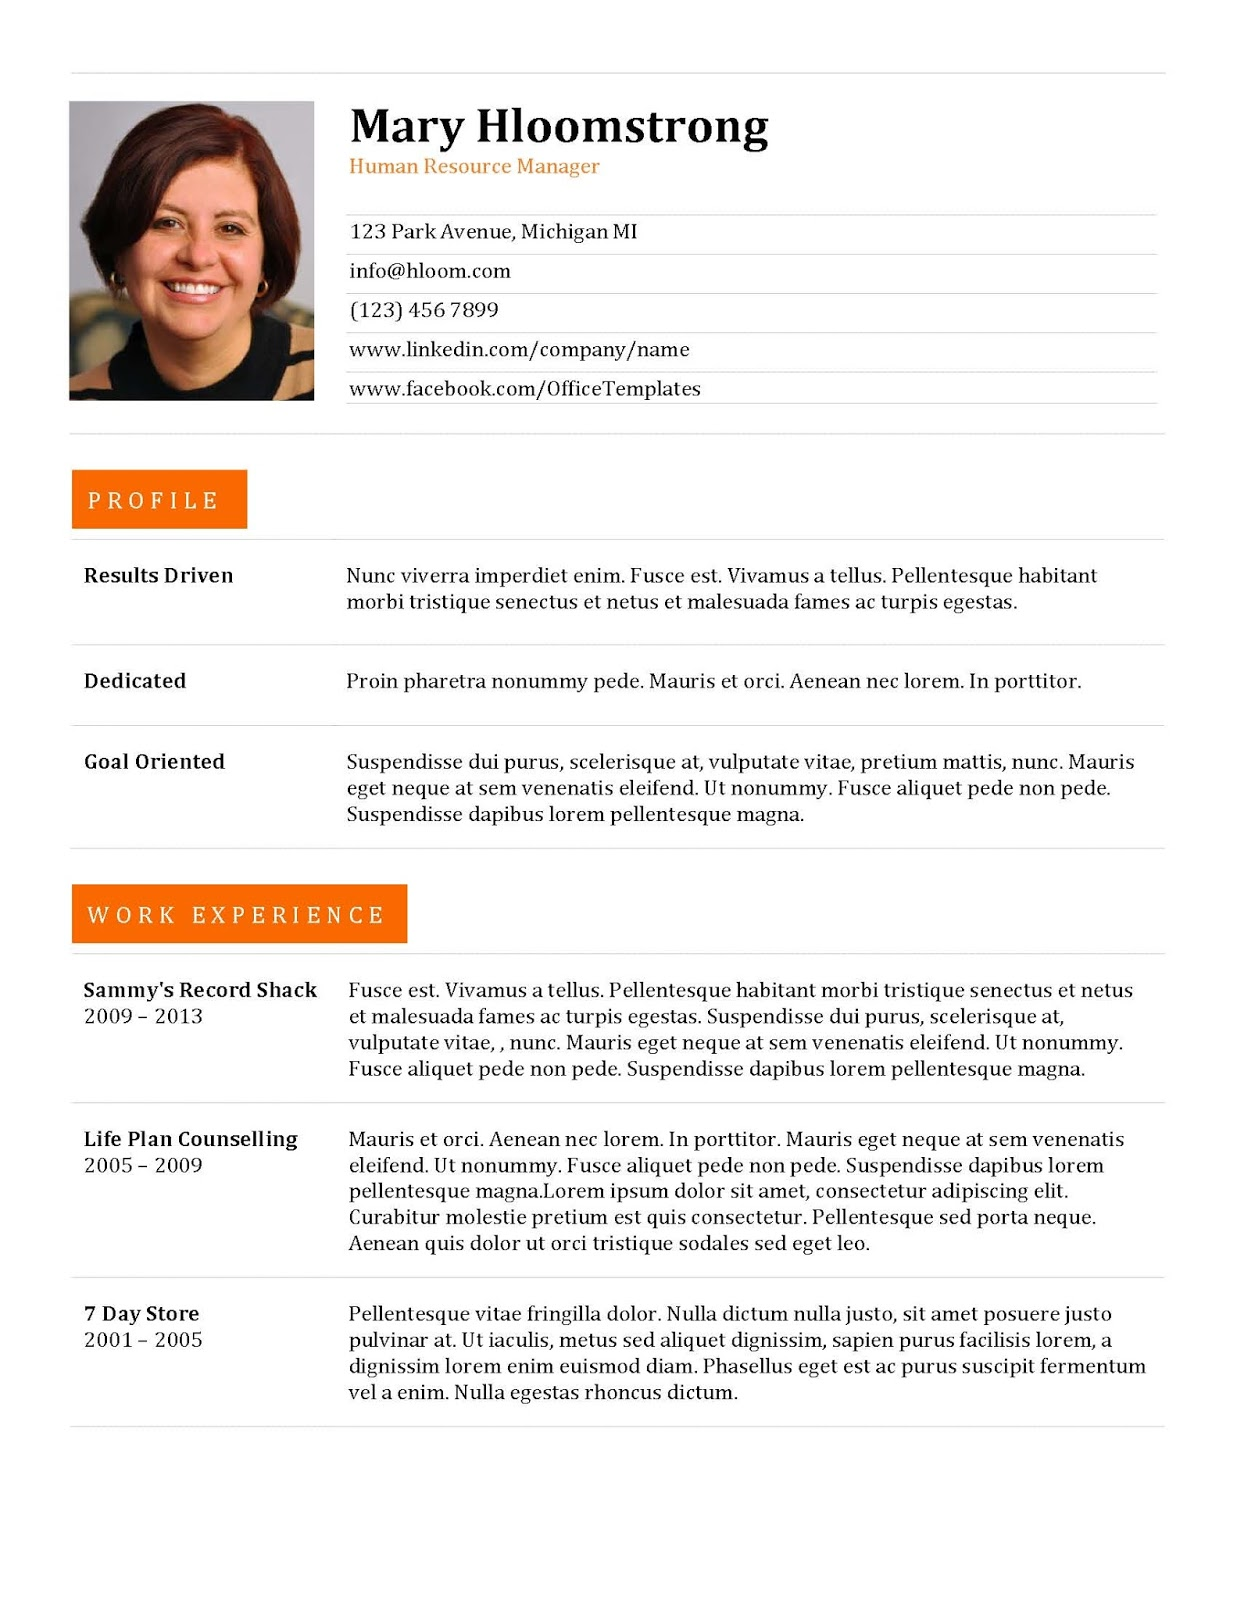 cv template jpg resume document resume maker create professional ...